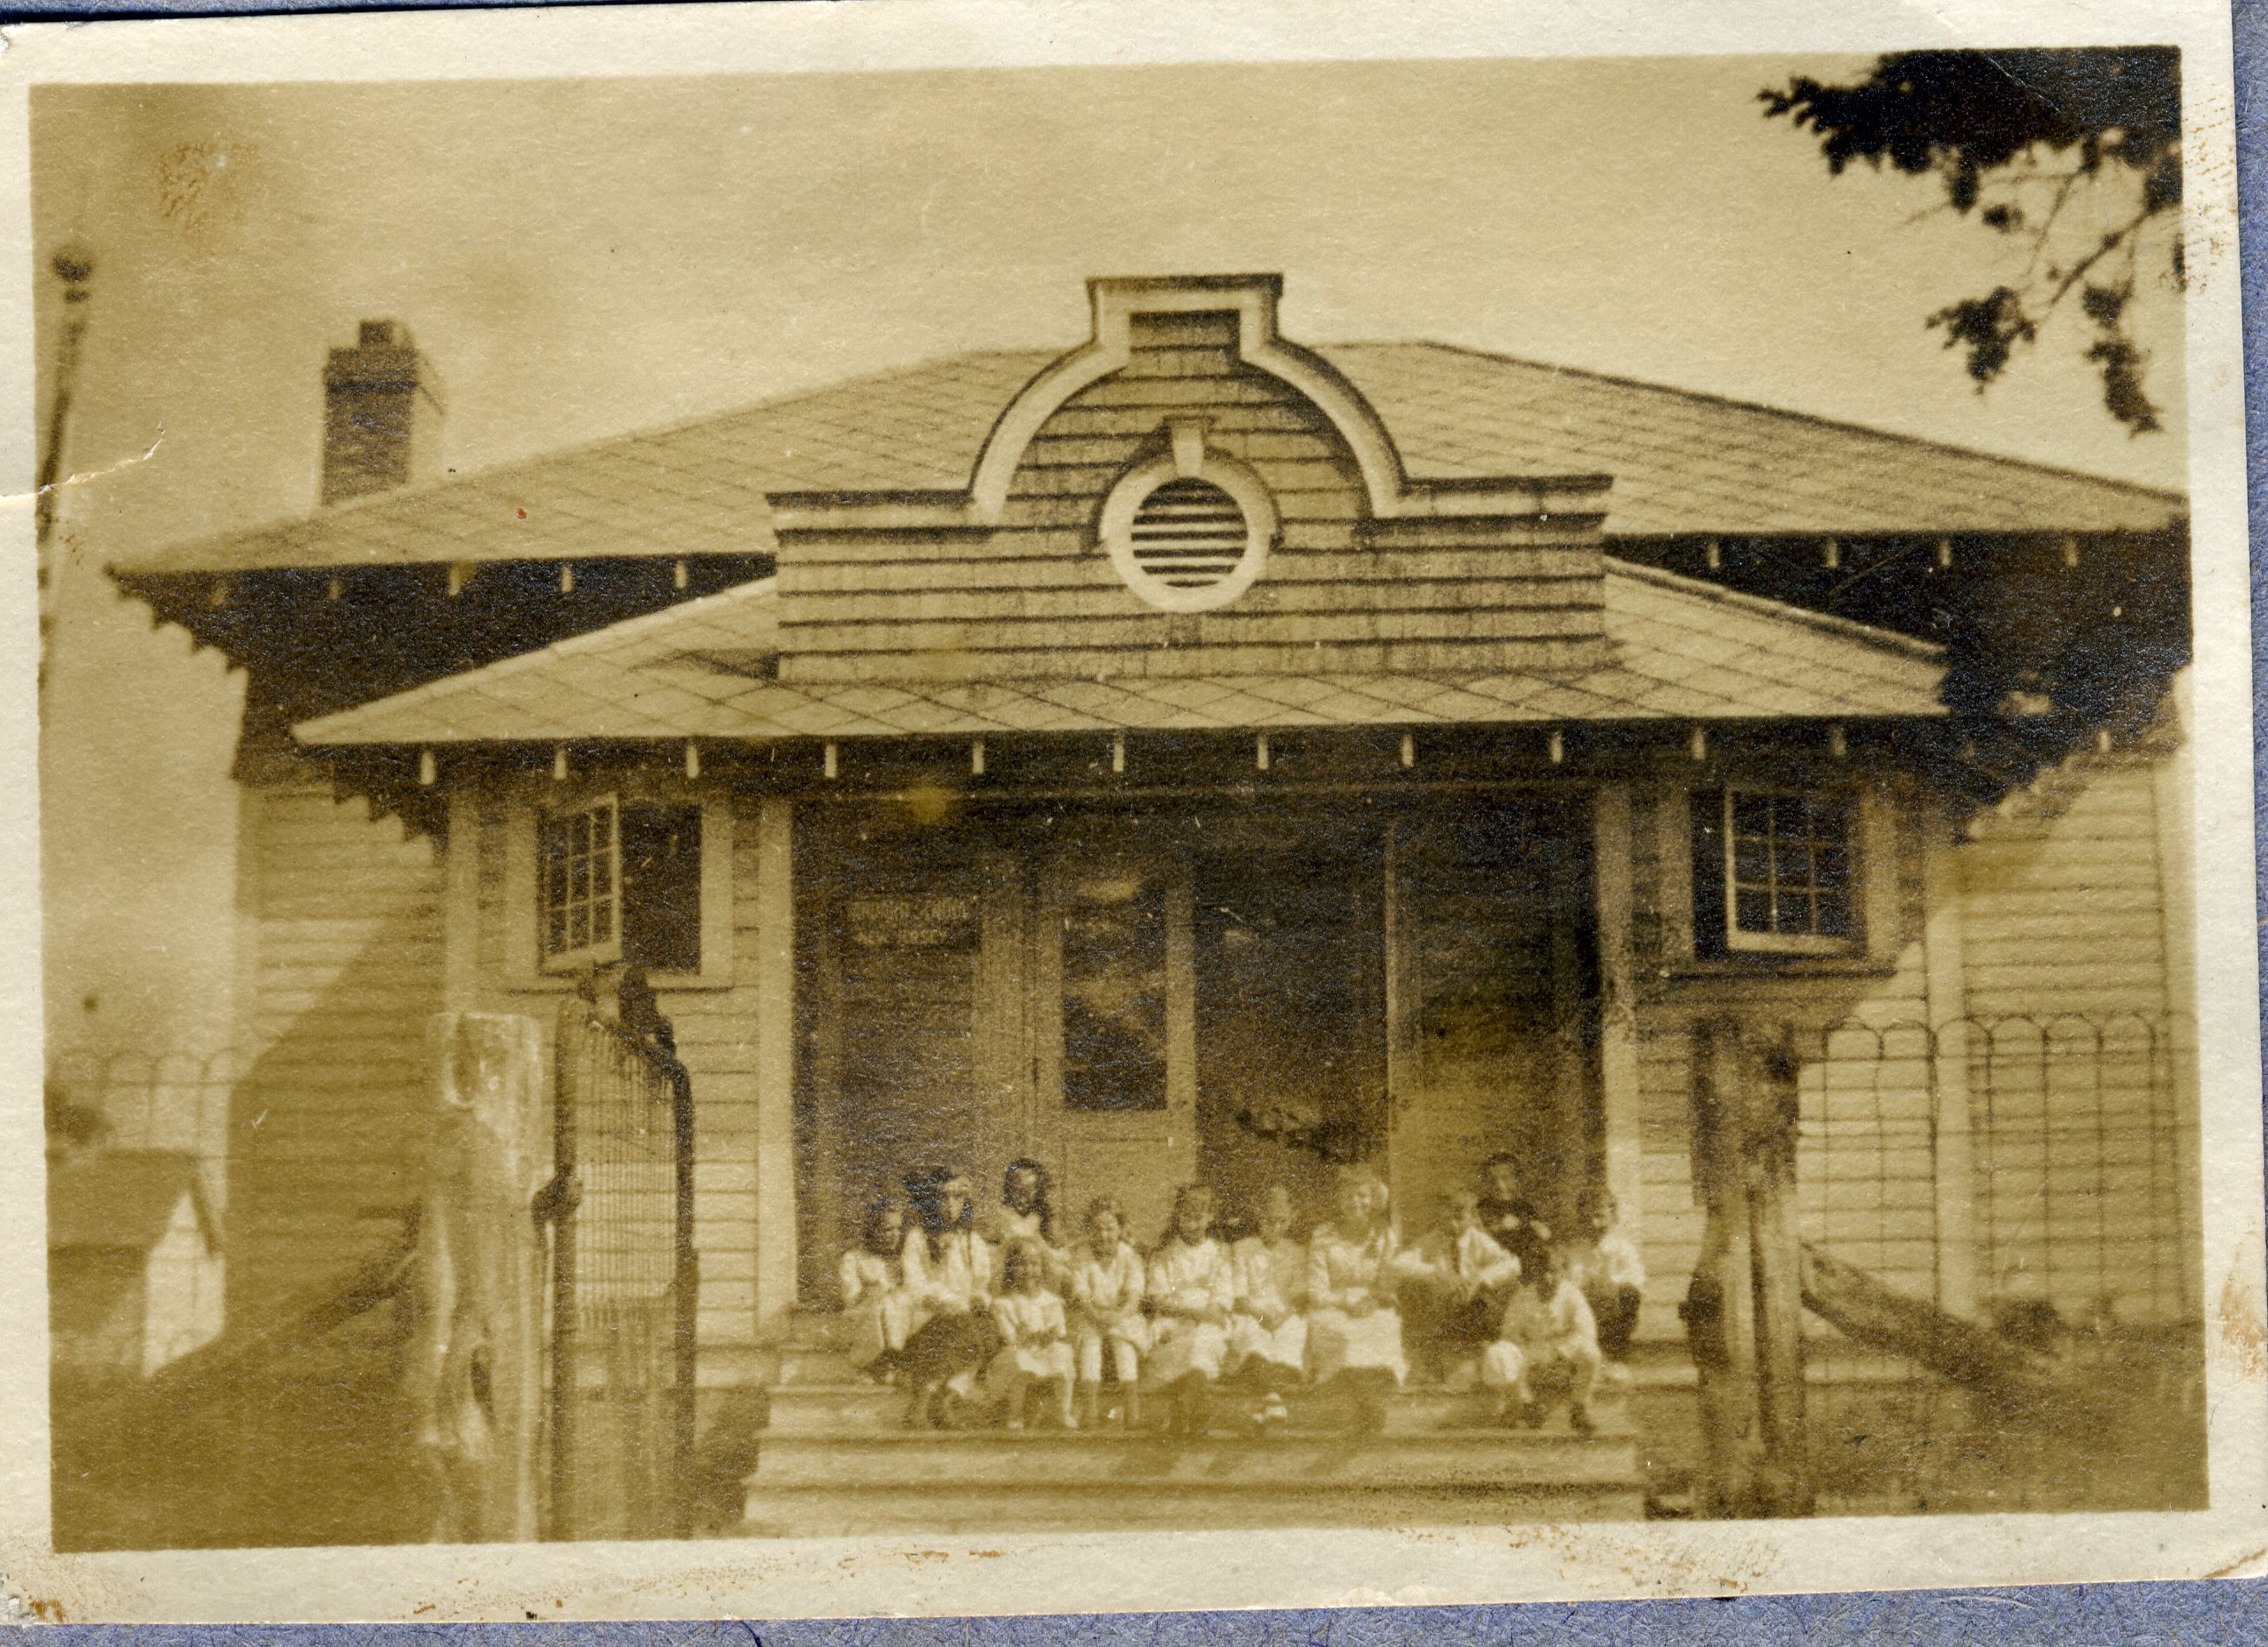 Example of Public School built in Upper Township in the late 19th century; The Palermo School which is built on the property next door to where the Friendship School is located today.